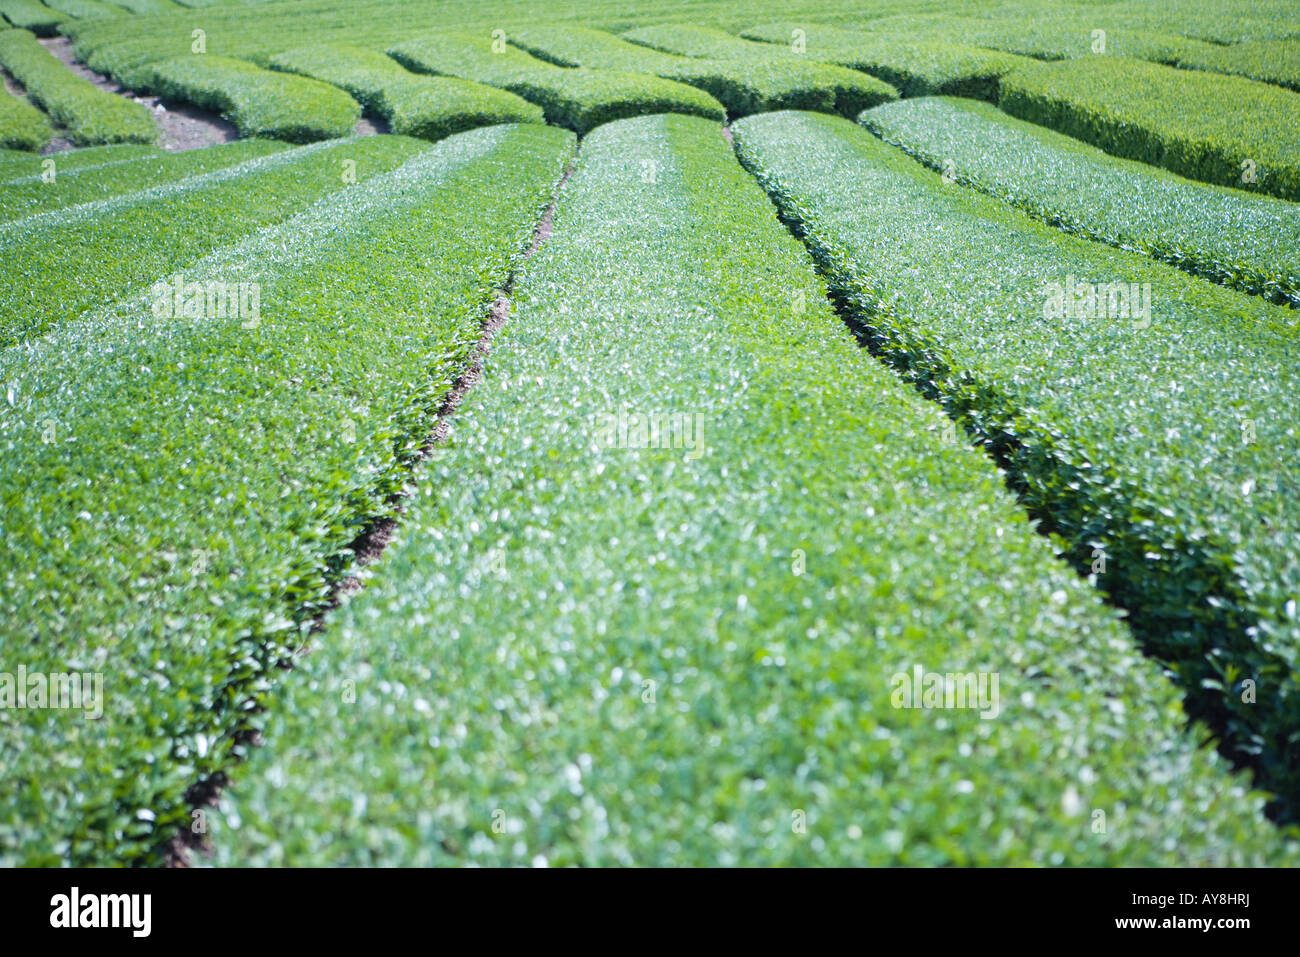 Hedges in Japanese ornamental garden, close-up - Stock Image